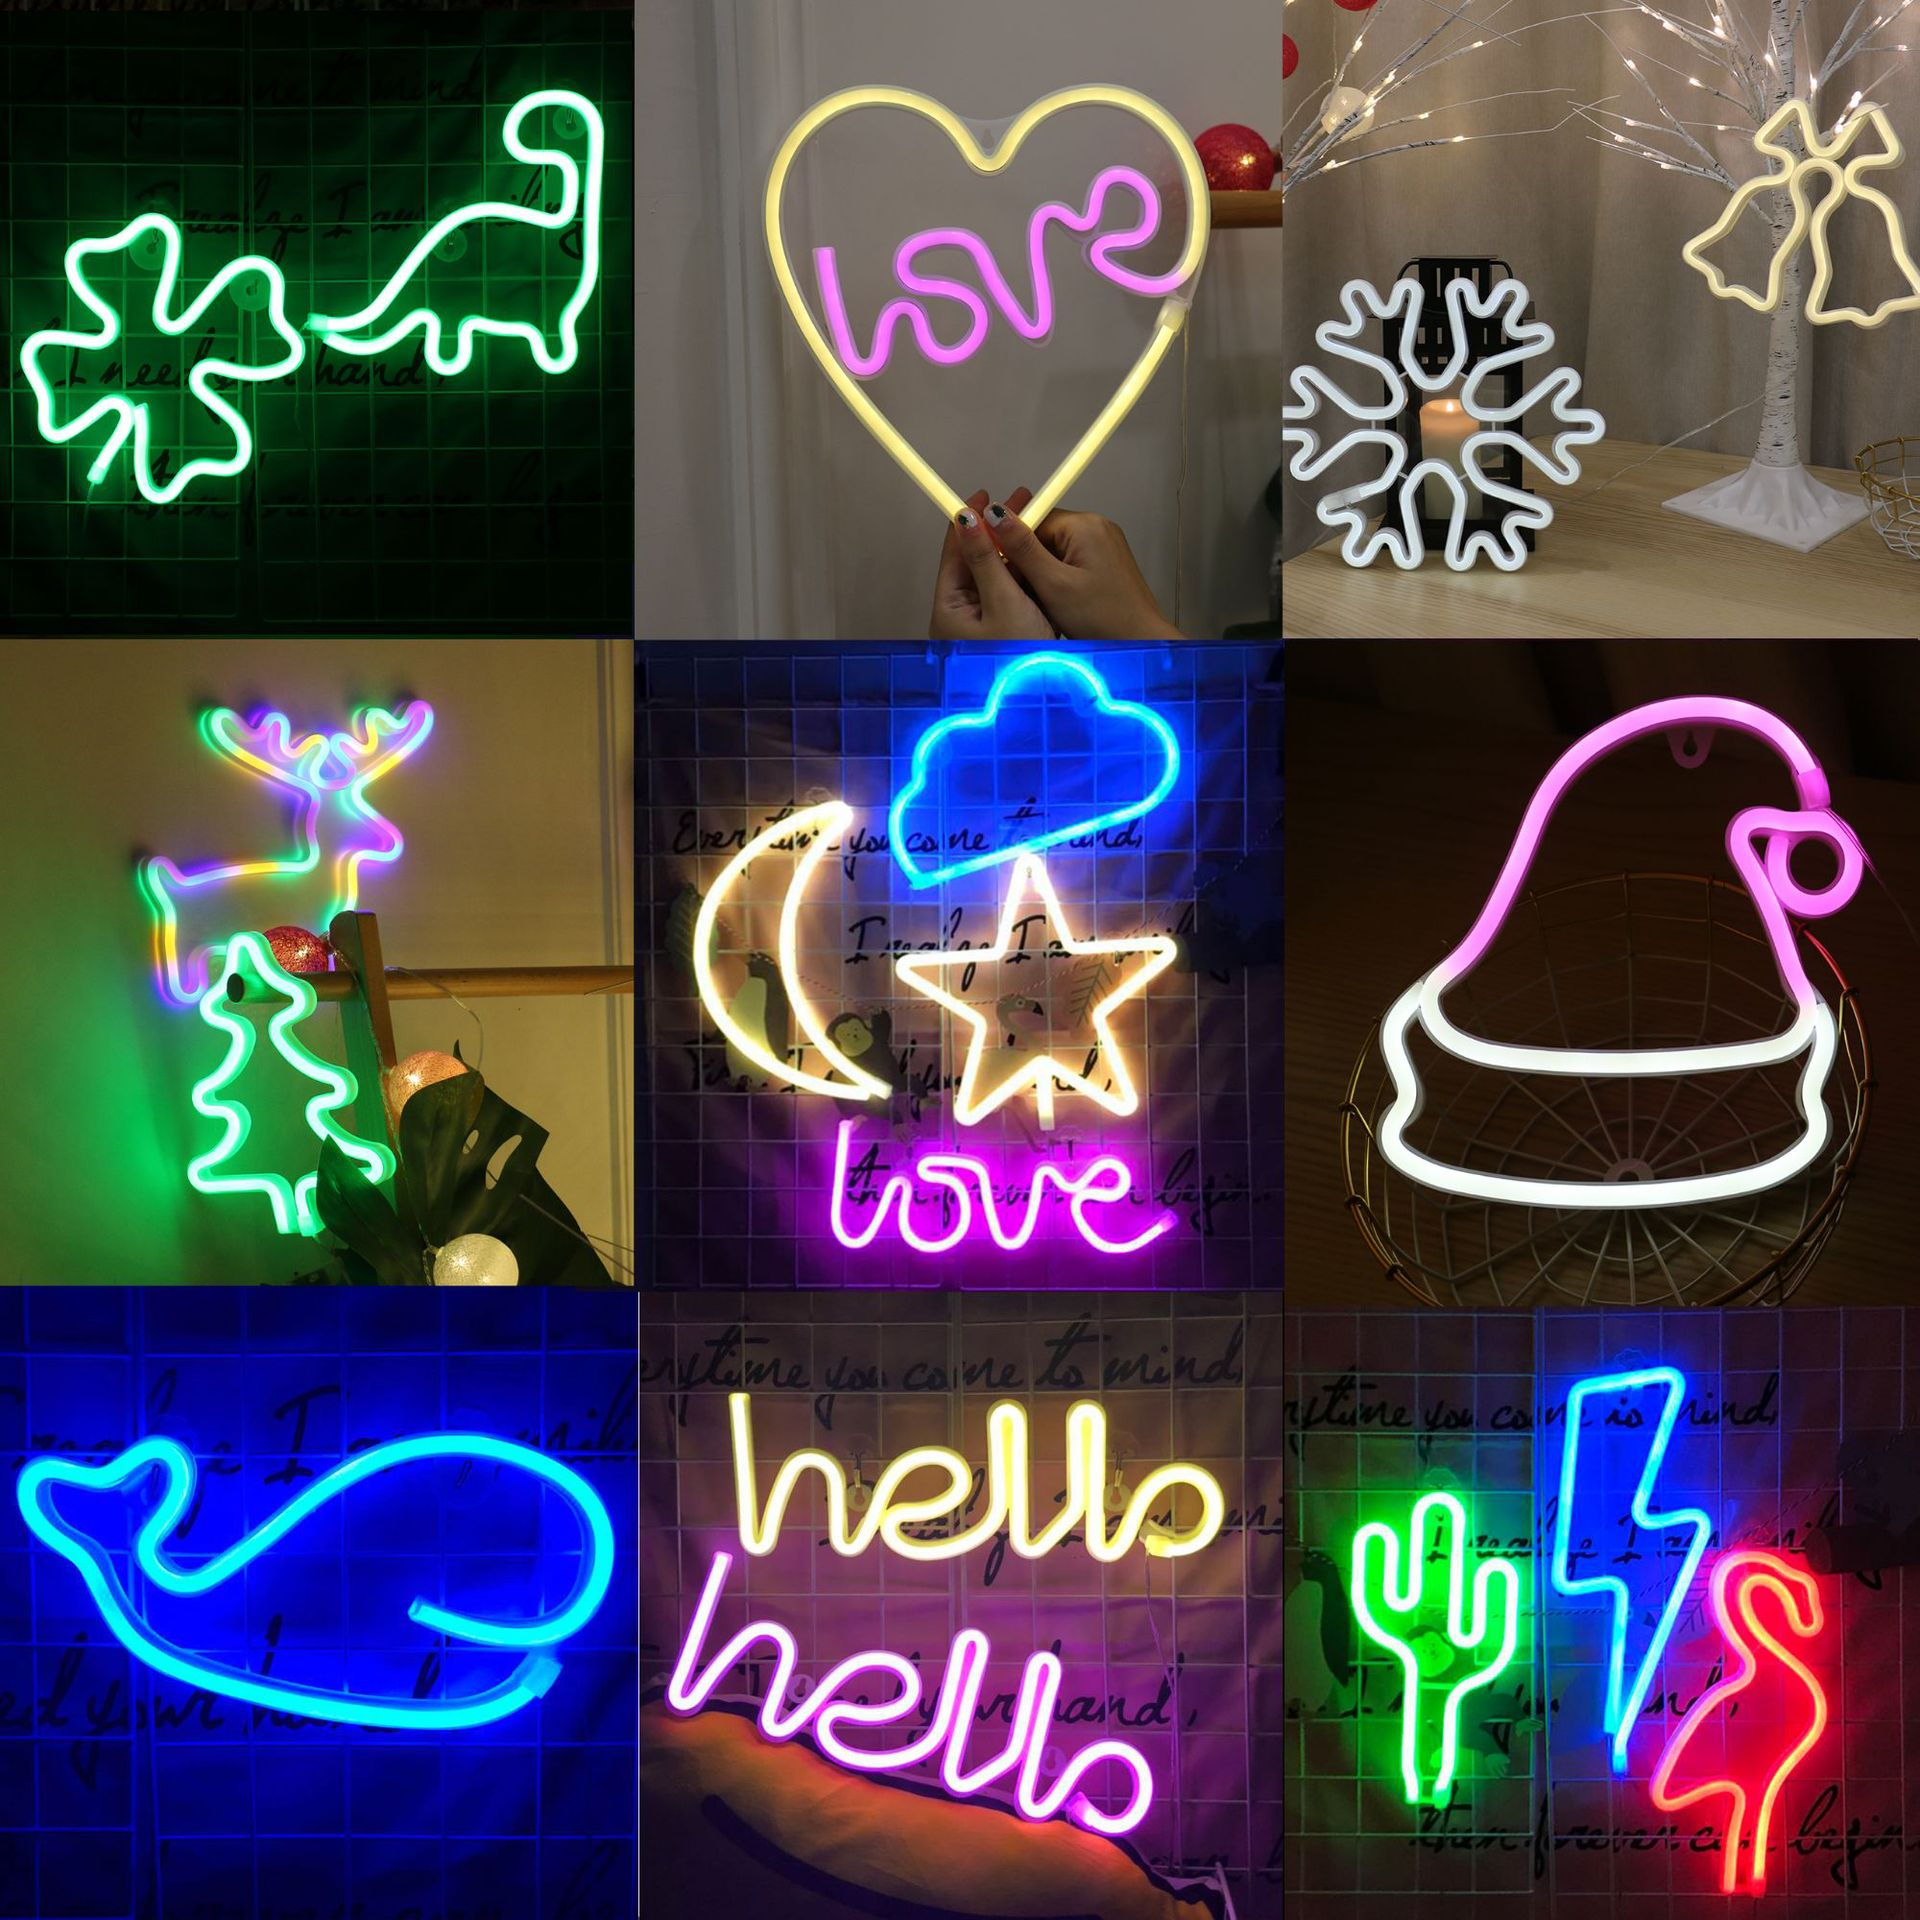 Colorful LED Neon Light Sign Wall Decor Lamp for Xmas Birthday Wedding Party Kids Room Living Room Wall Hanging Decor Lighting image